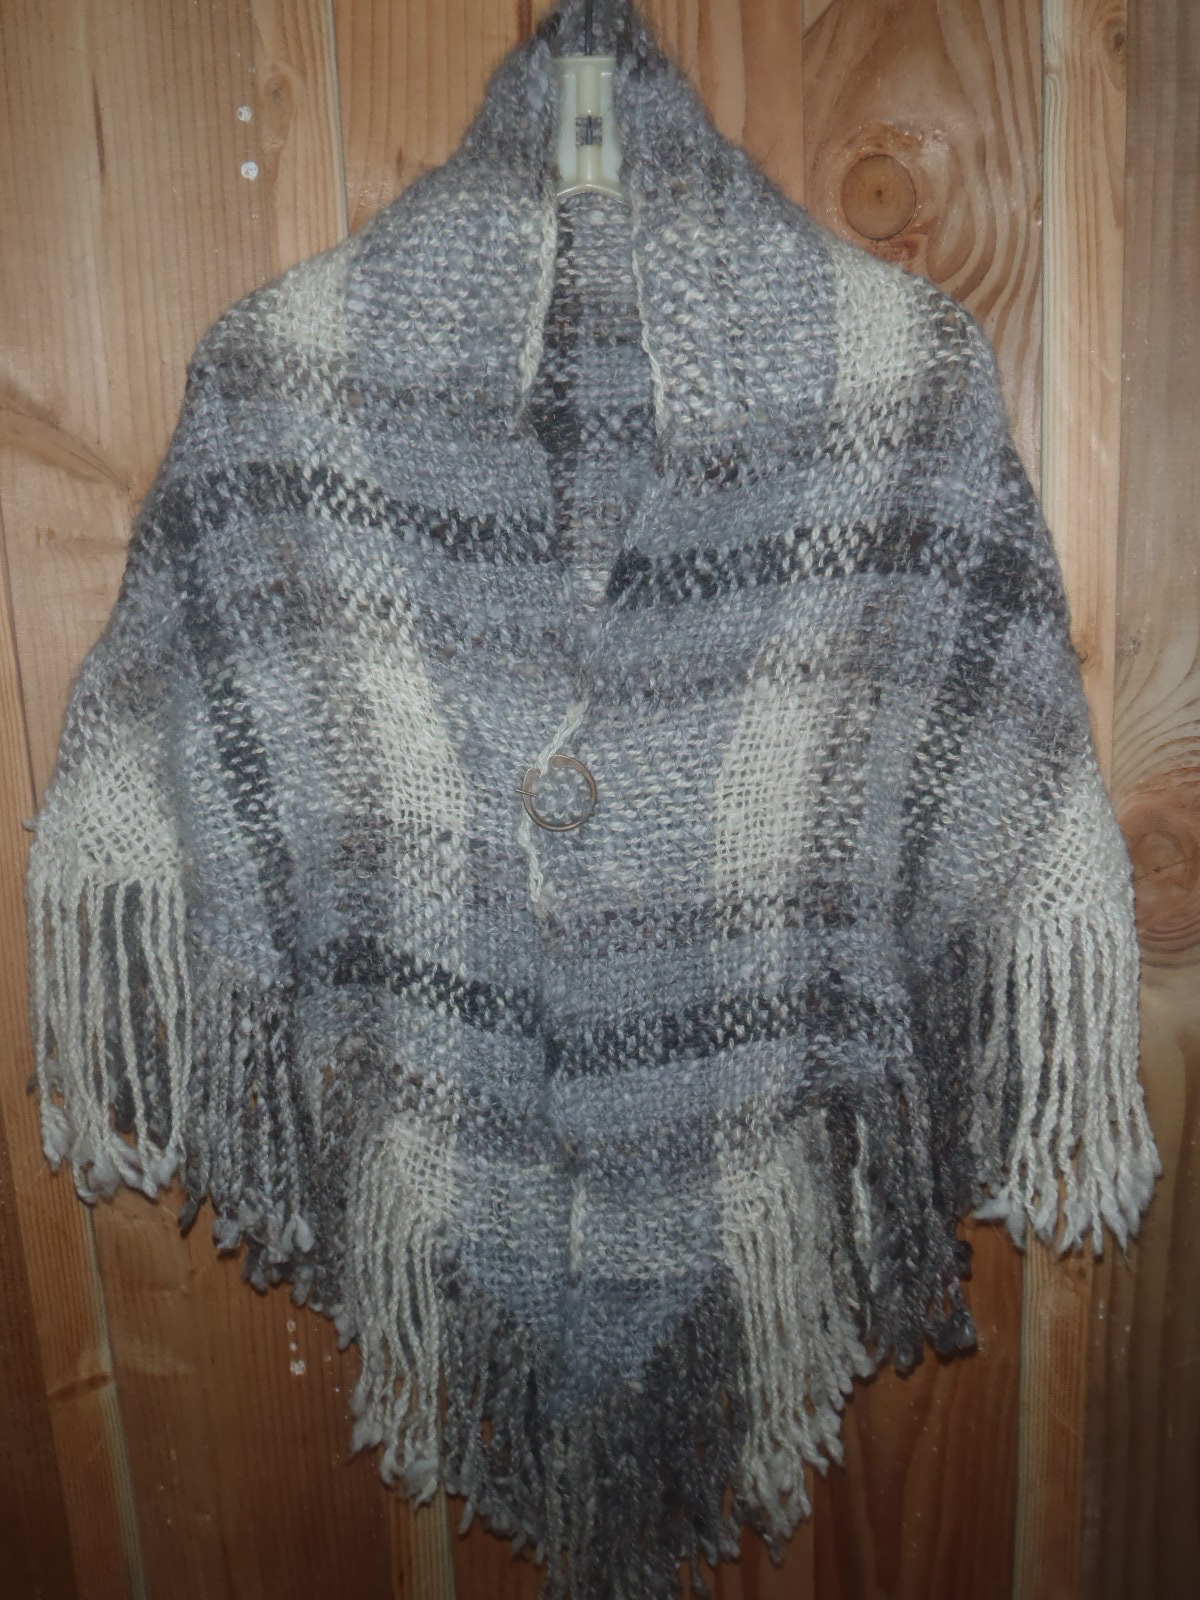 Photo of the shawl.